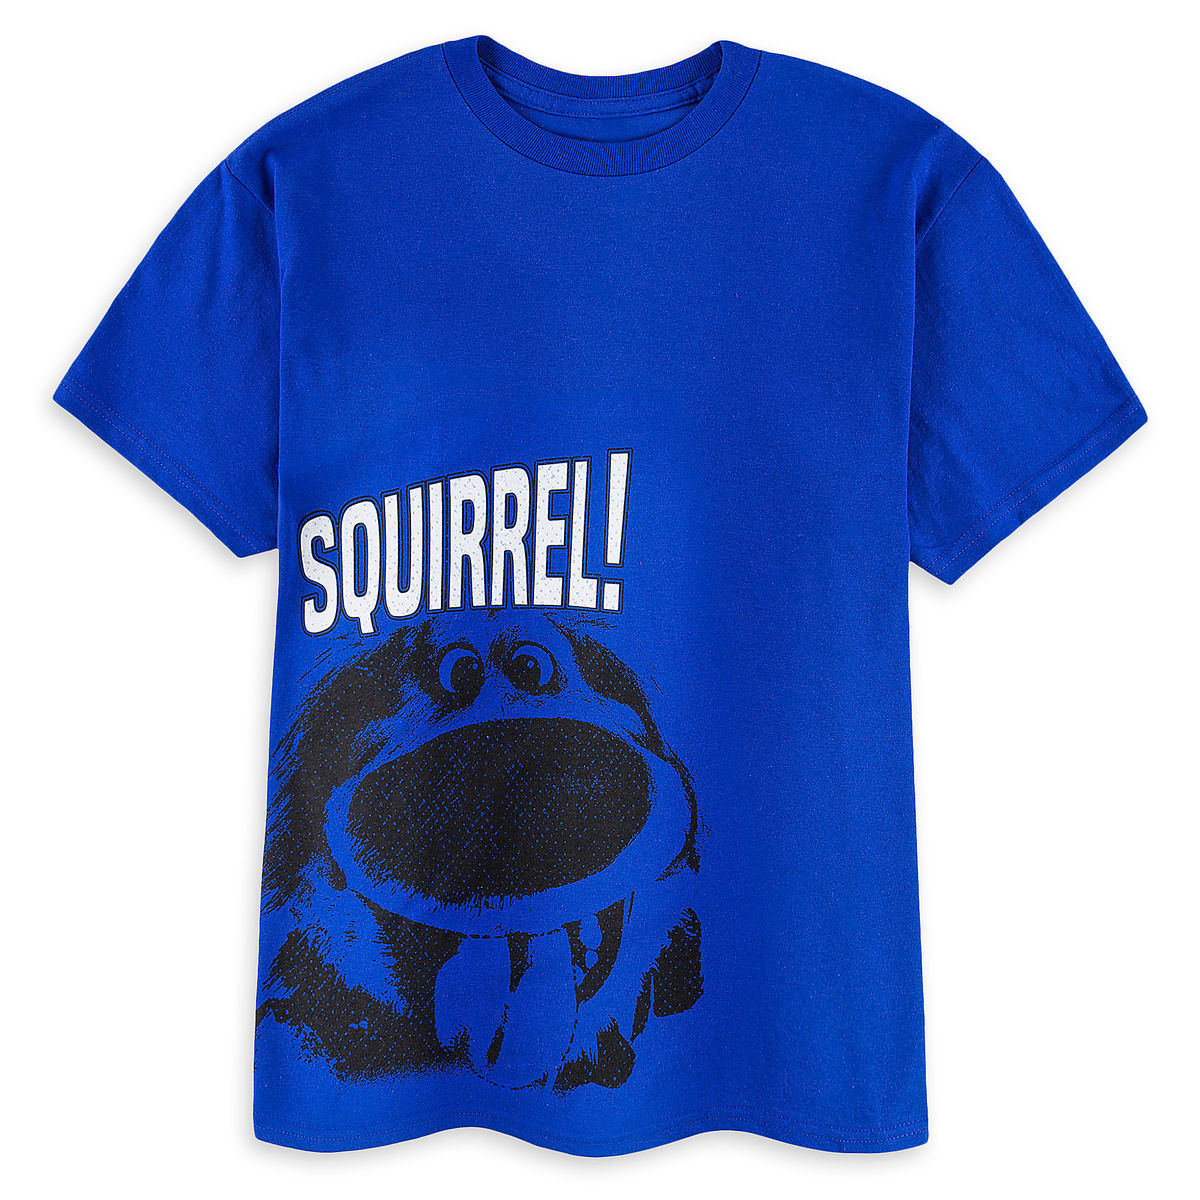 a0ffcd247b1 Disney Shirt for Boys - Dug T-Shirt - Squirrel - Blue